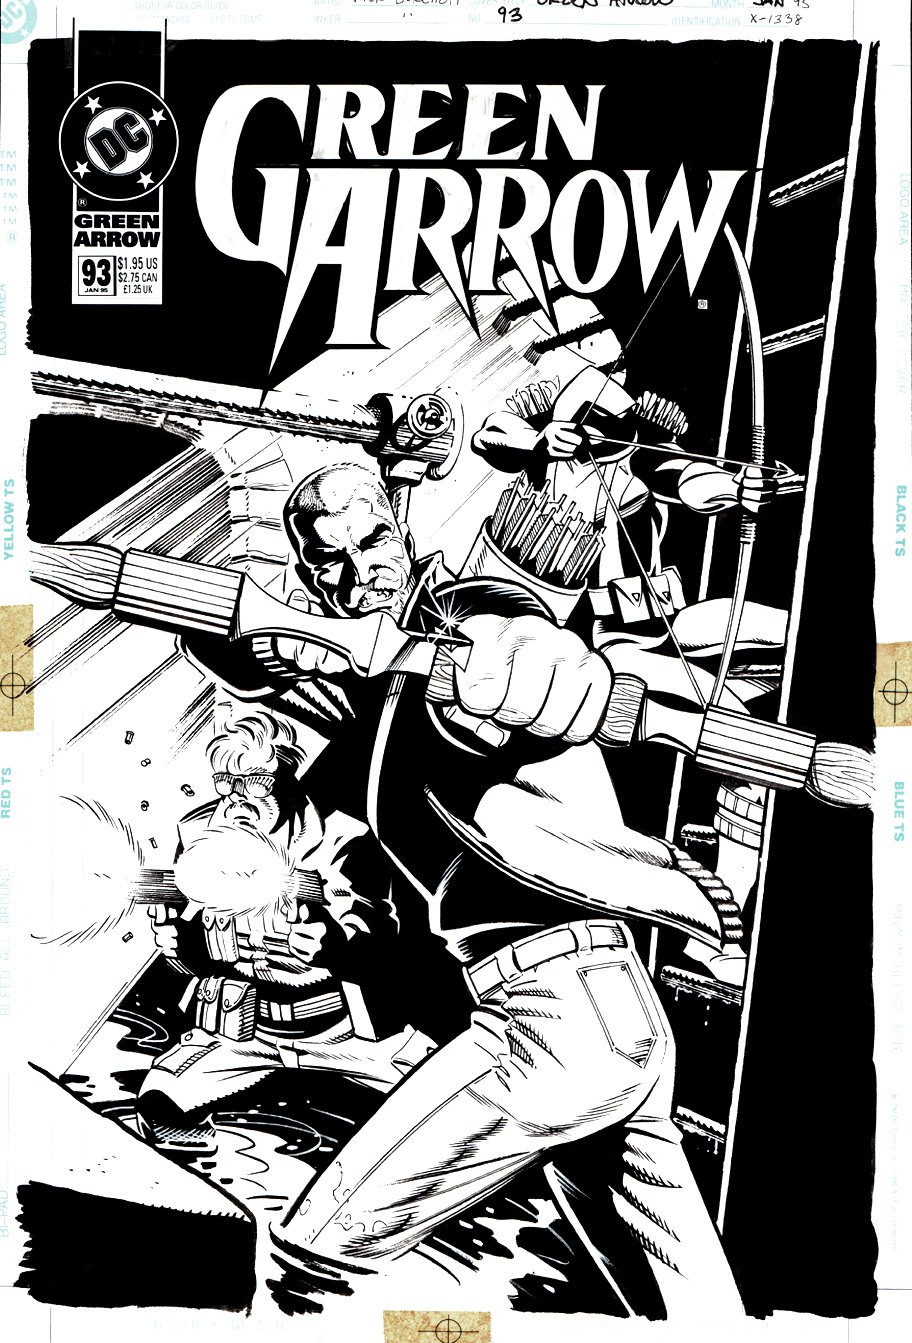 Green Arrow #93 Cover (1994)